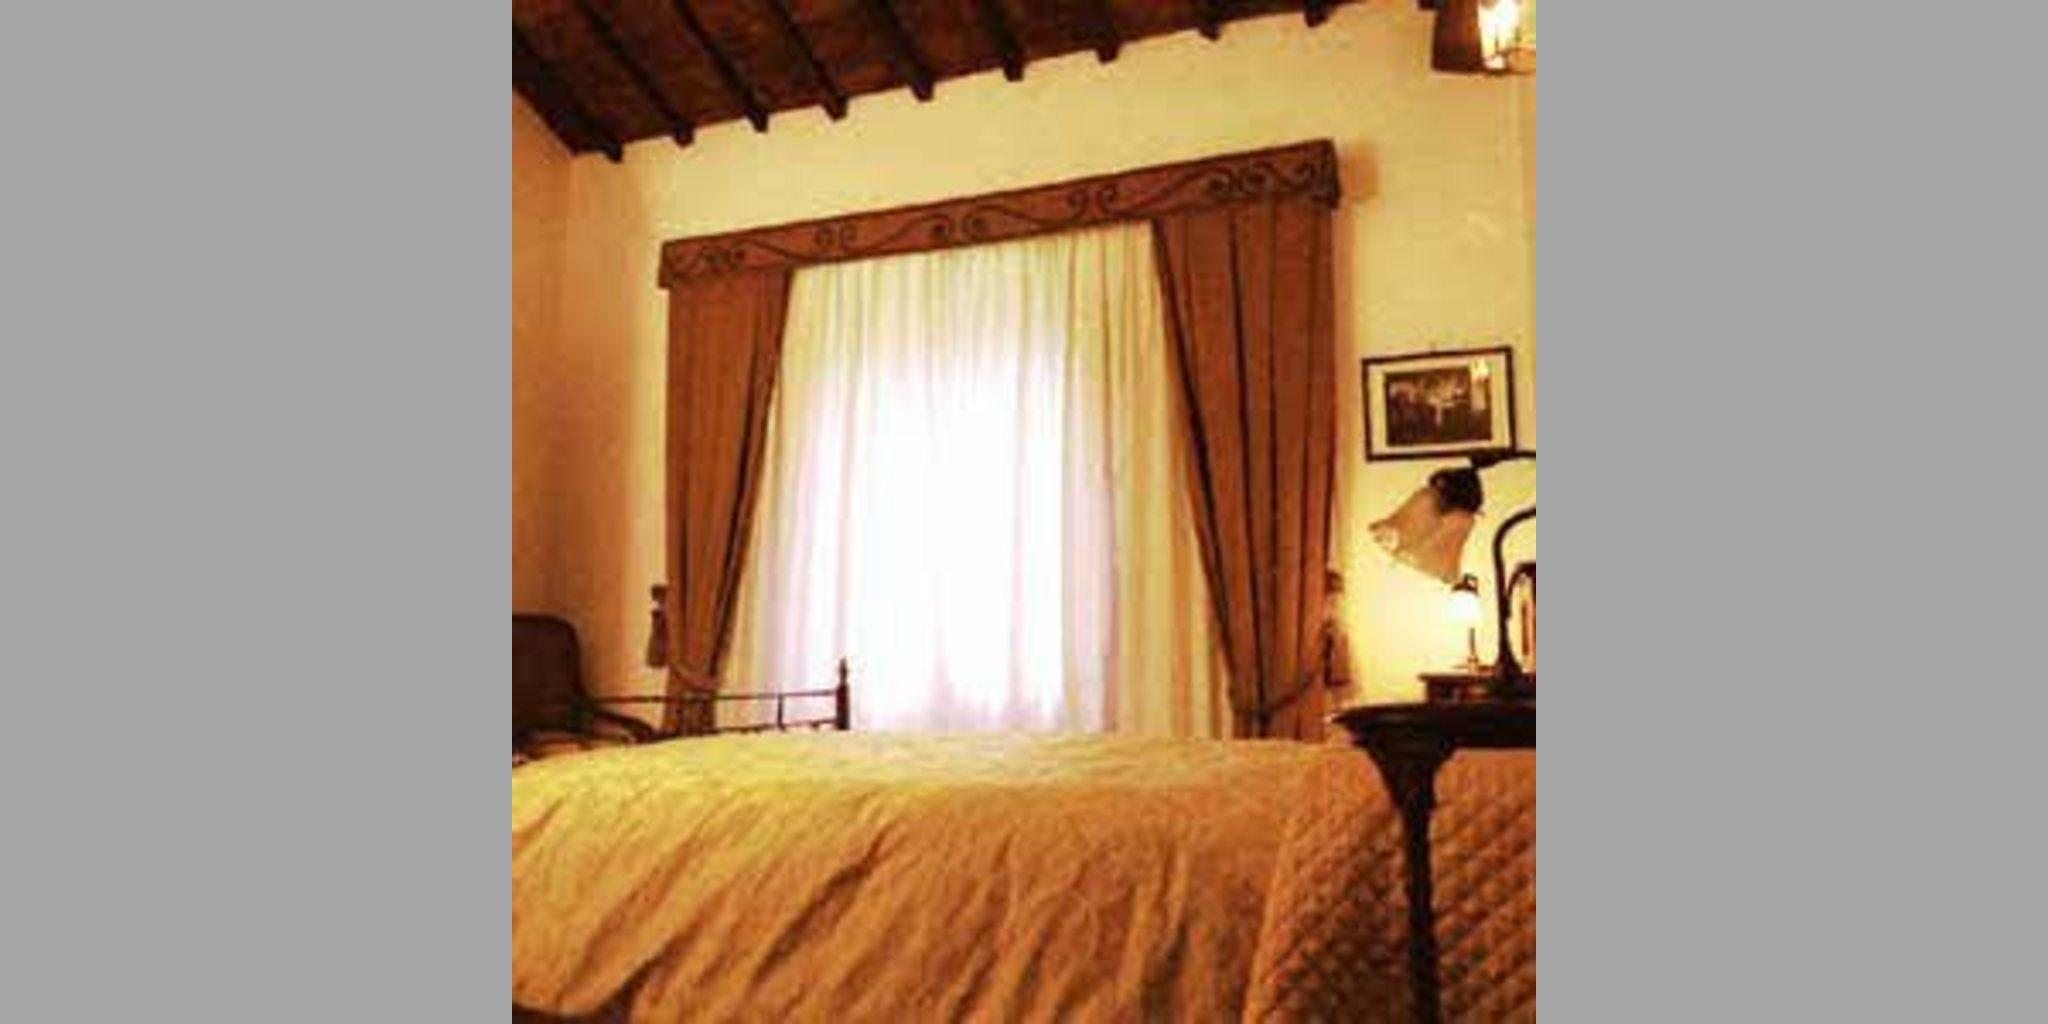 Bed & Breakfast Magione - Lago Trasimeno  Case Sparse1